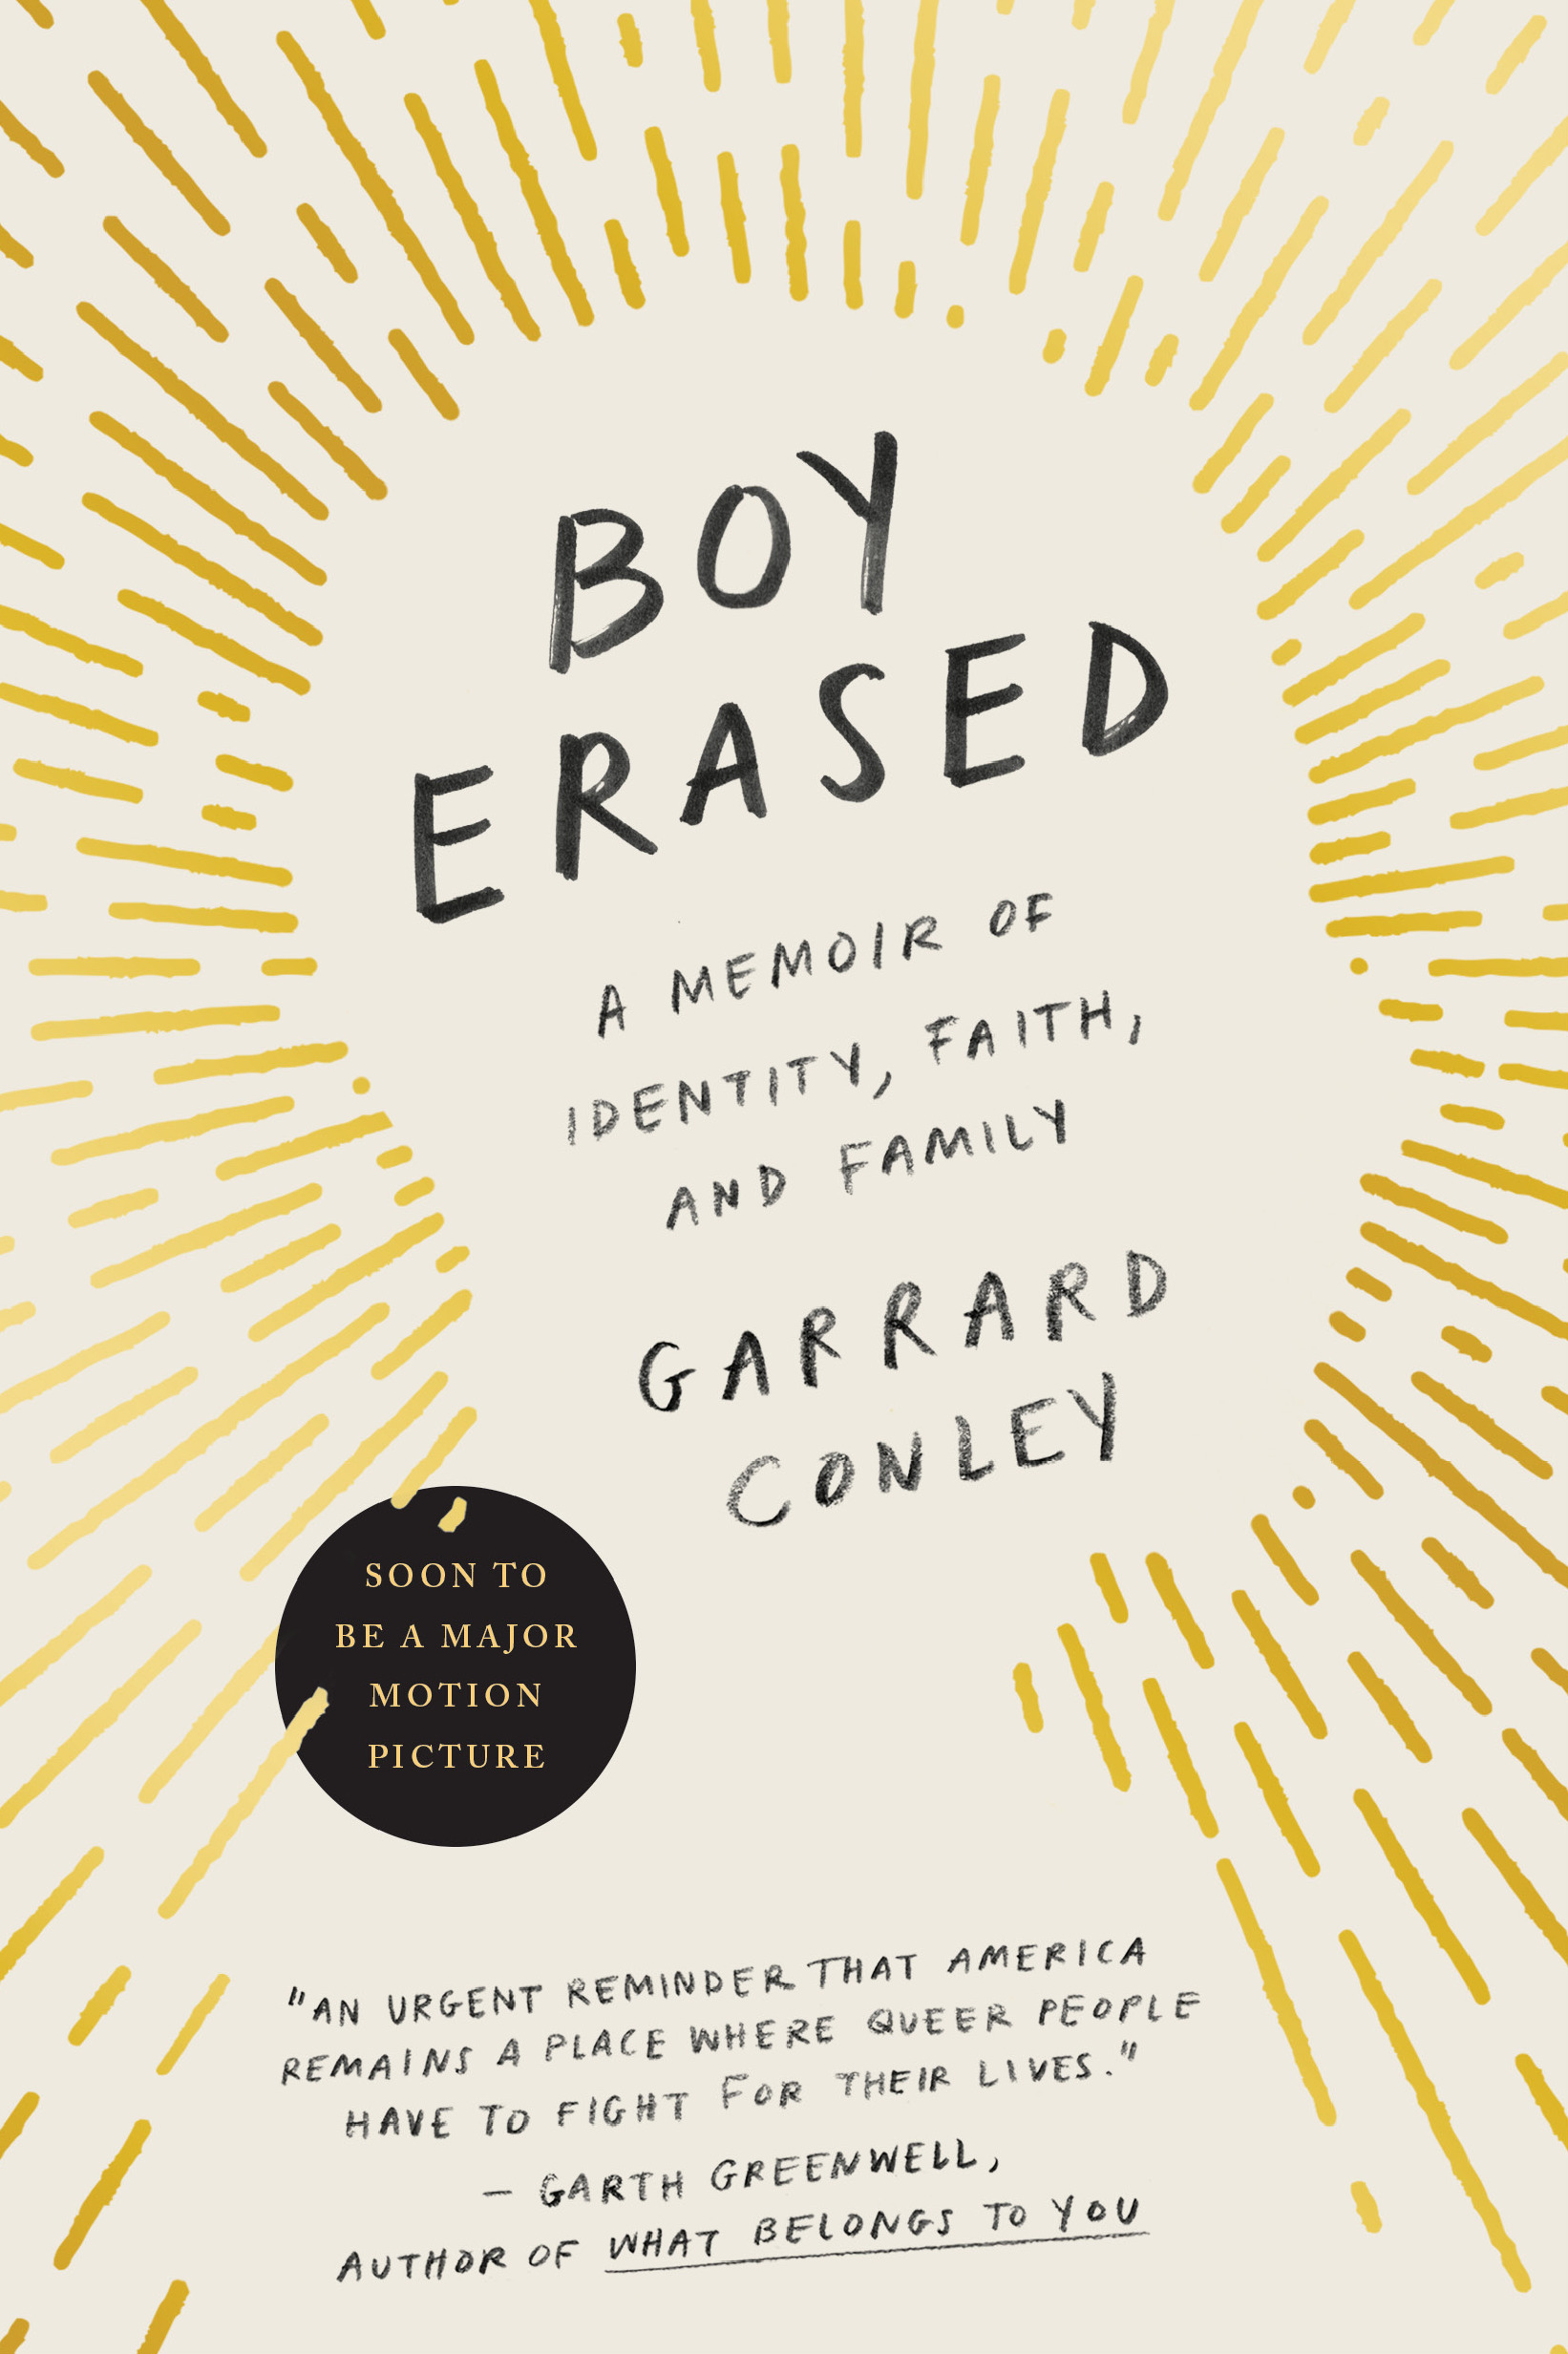 BoyErased_TP.jpg